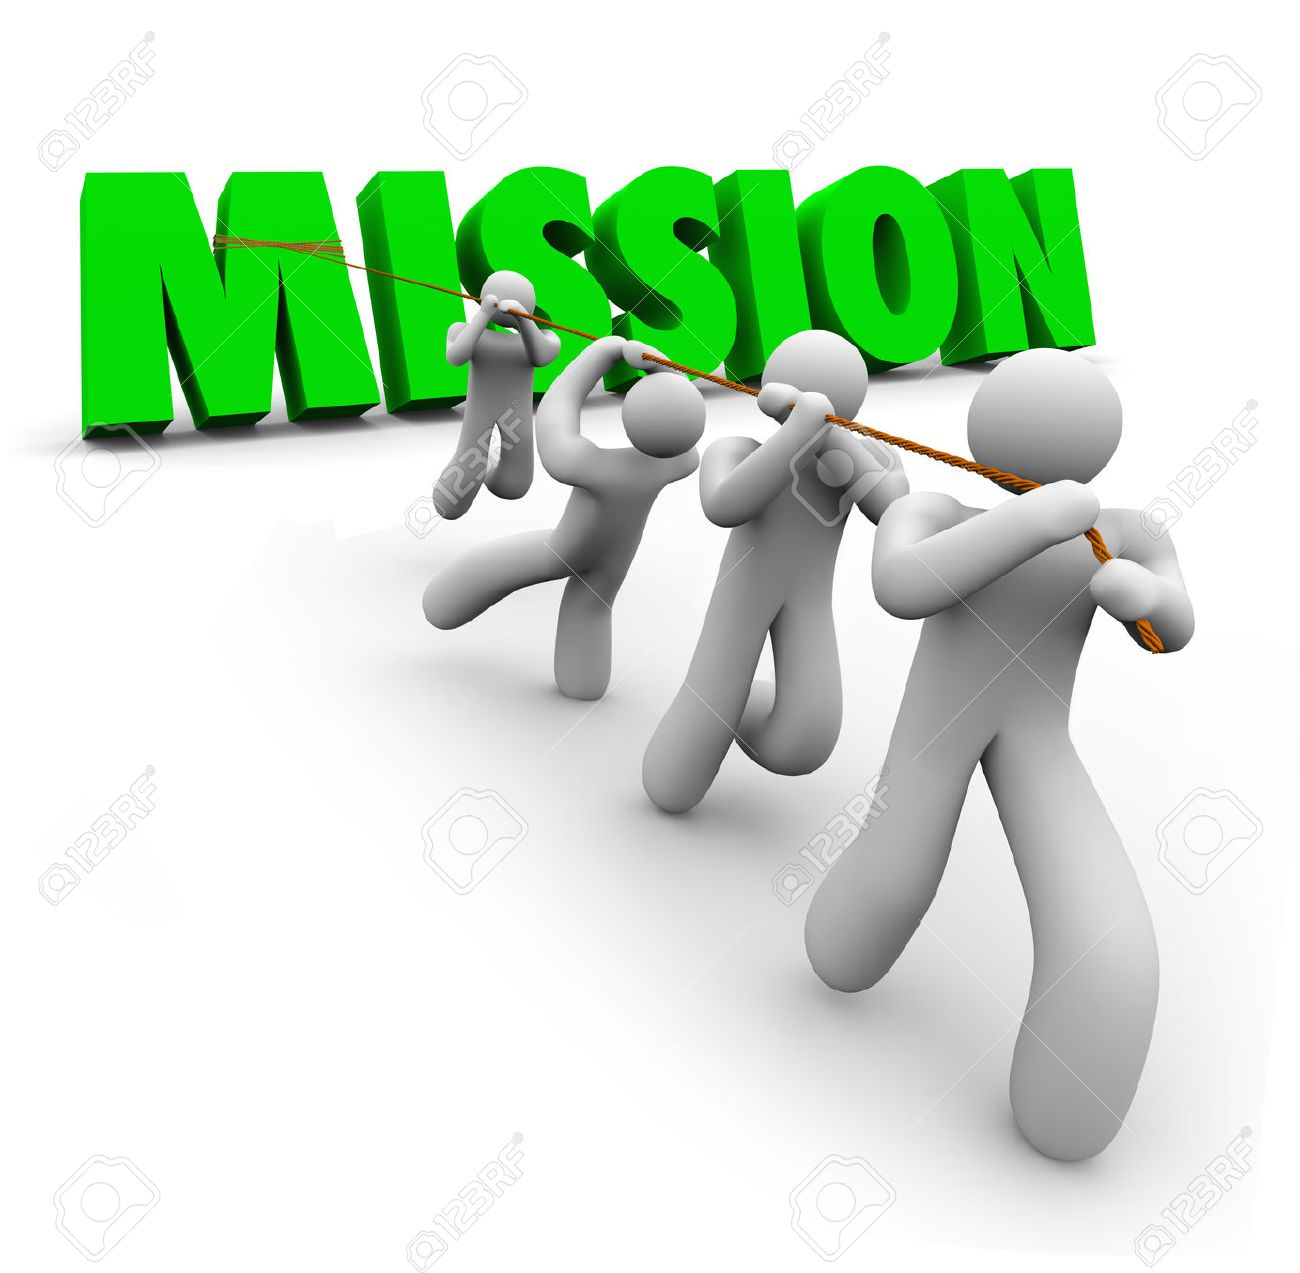 goals and objectives stock photos images royalty goals and goals and objectives mission word pulled up by a team of workers striving together to